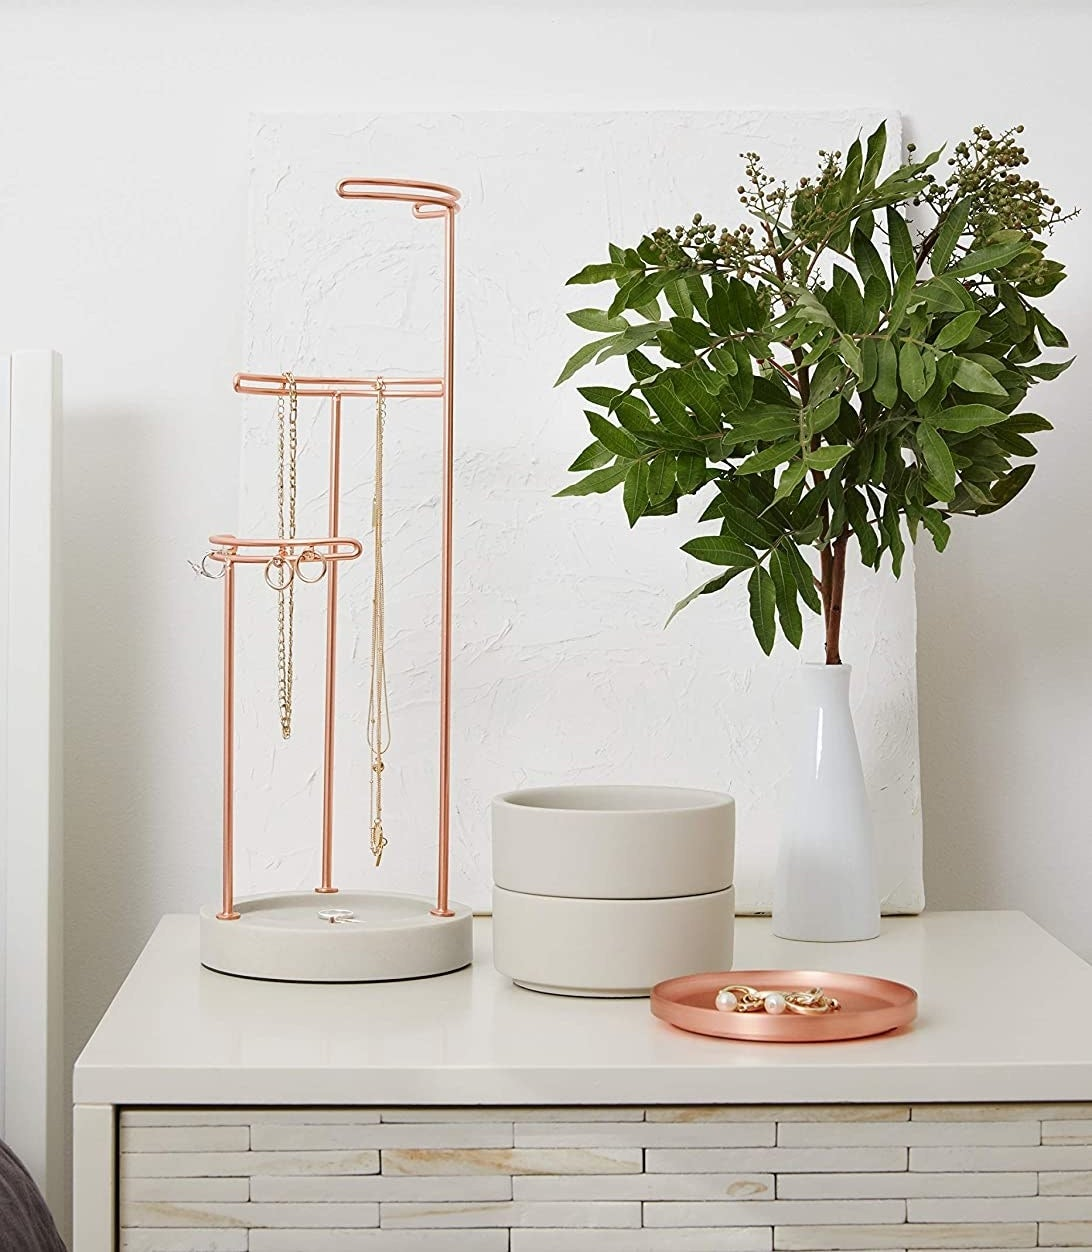 A jewelry holder on a desk next to a plant